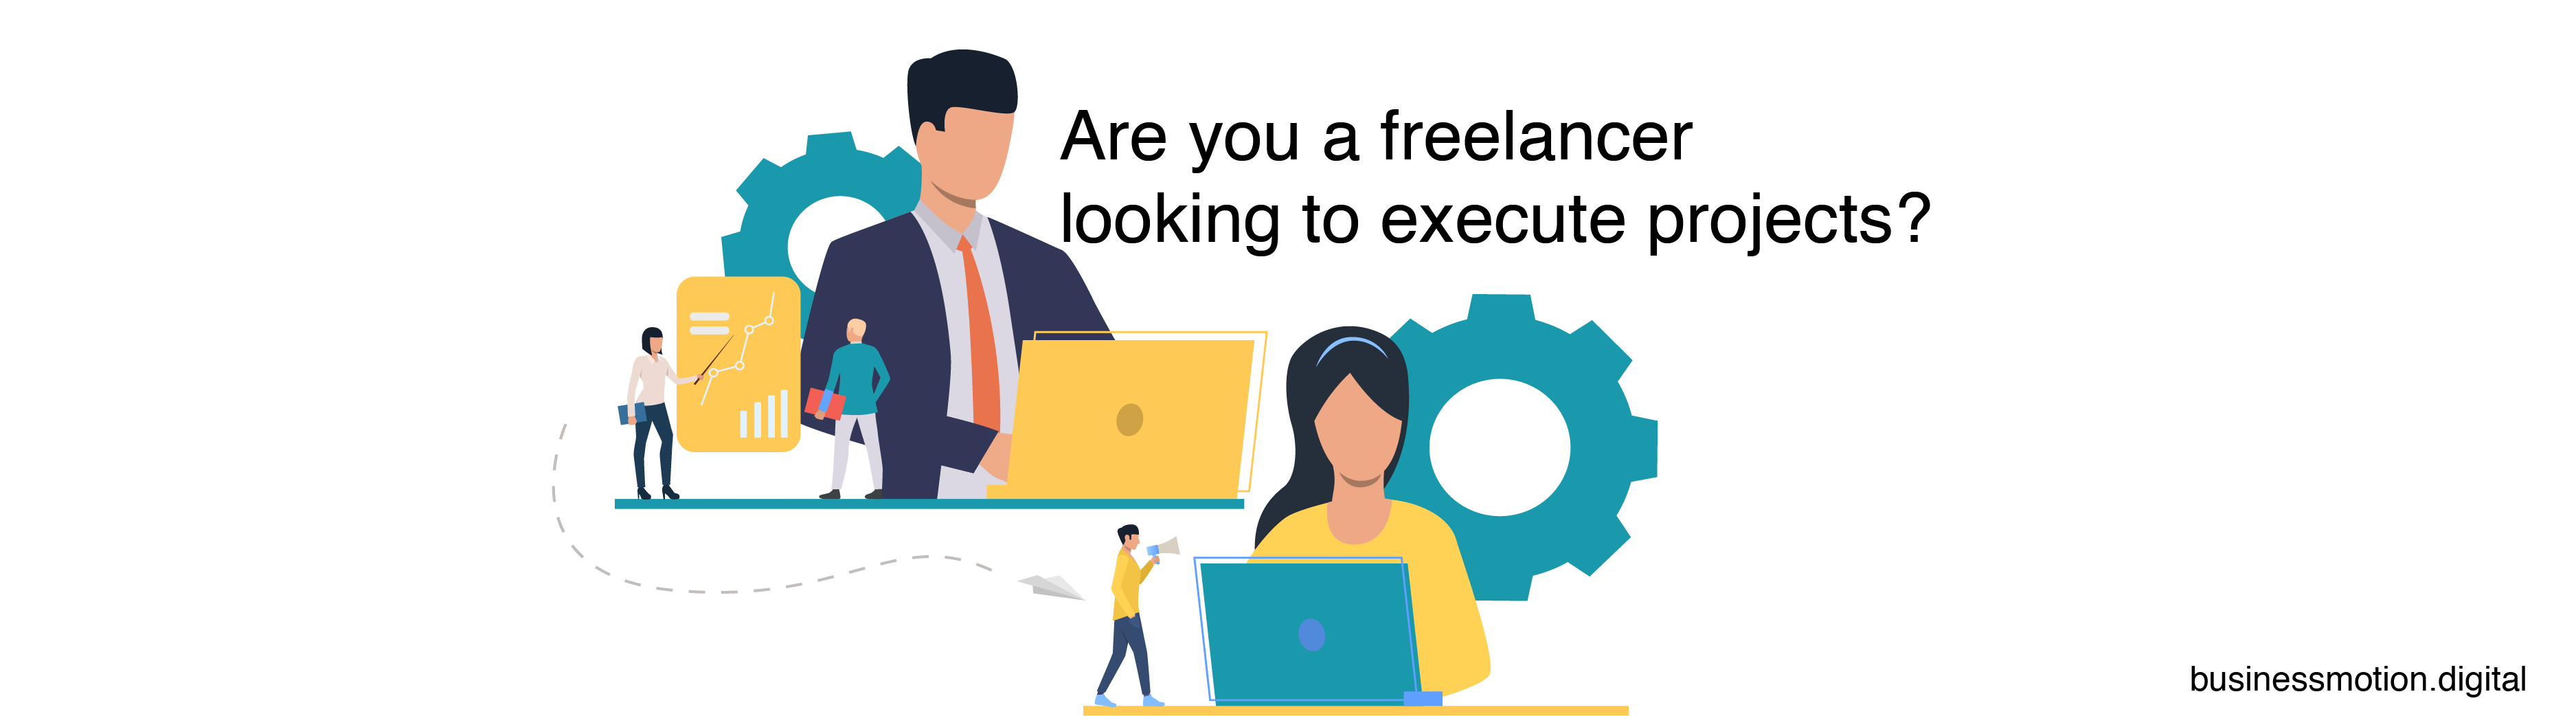 Are you a freelancer looking to execute projects -Business motion projects